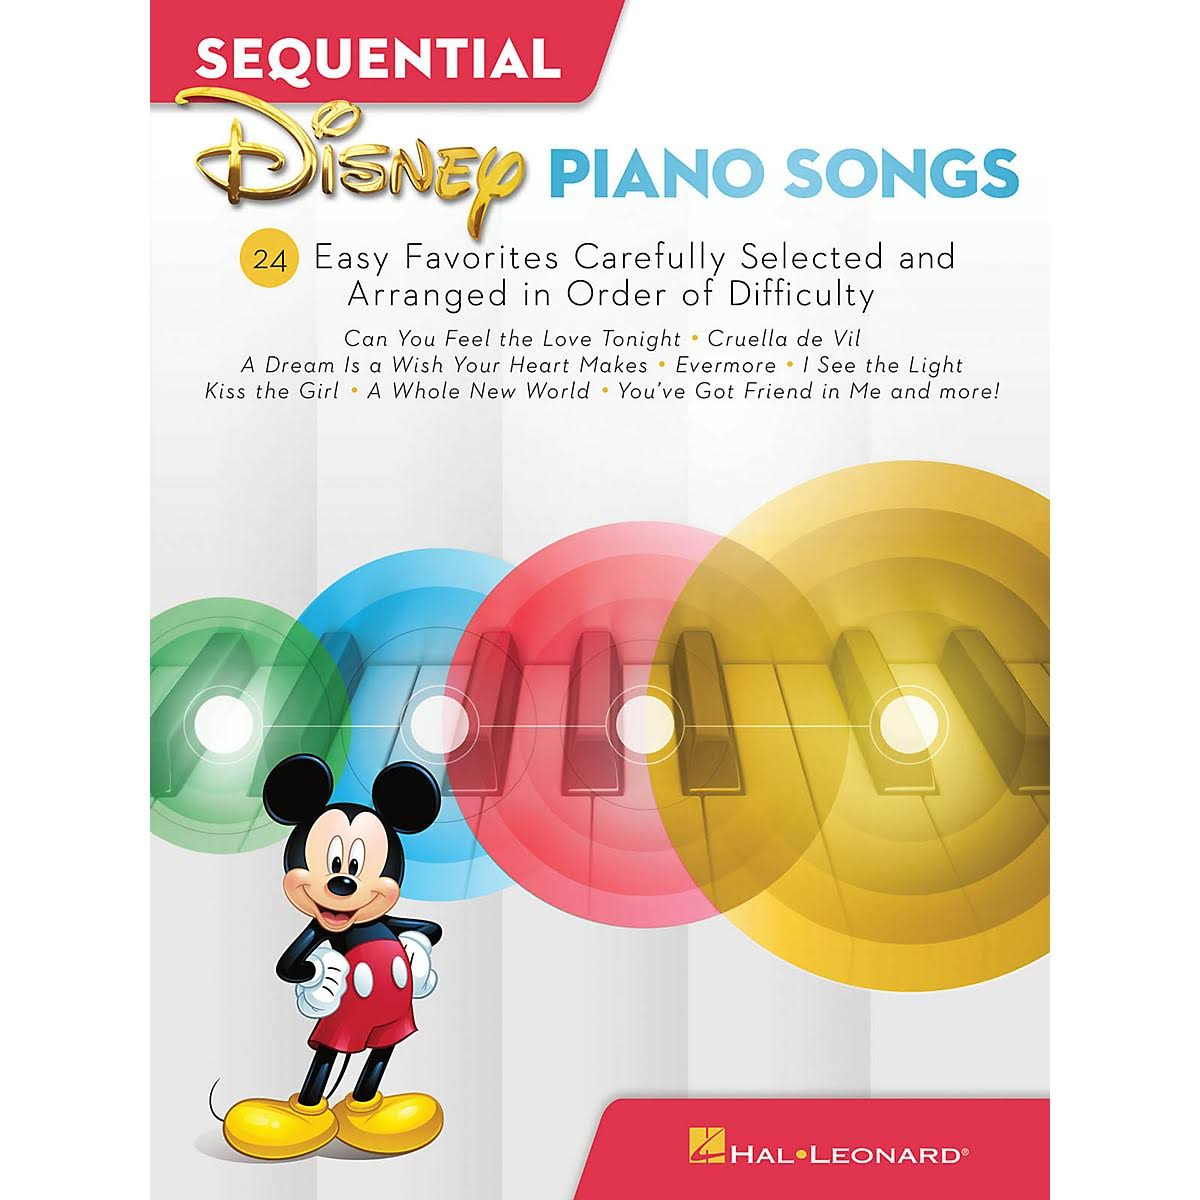 Sequential Disney Piano Songs: 24 Easy Favorites Carefully - Hal Leonard Corp